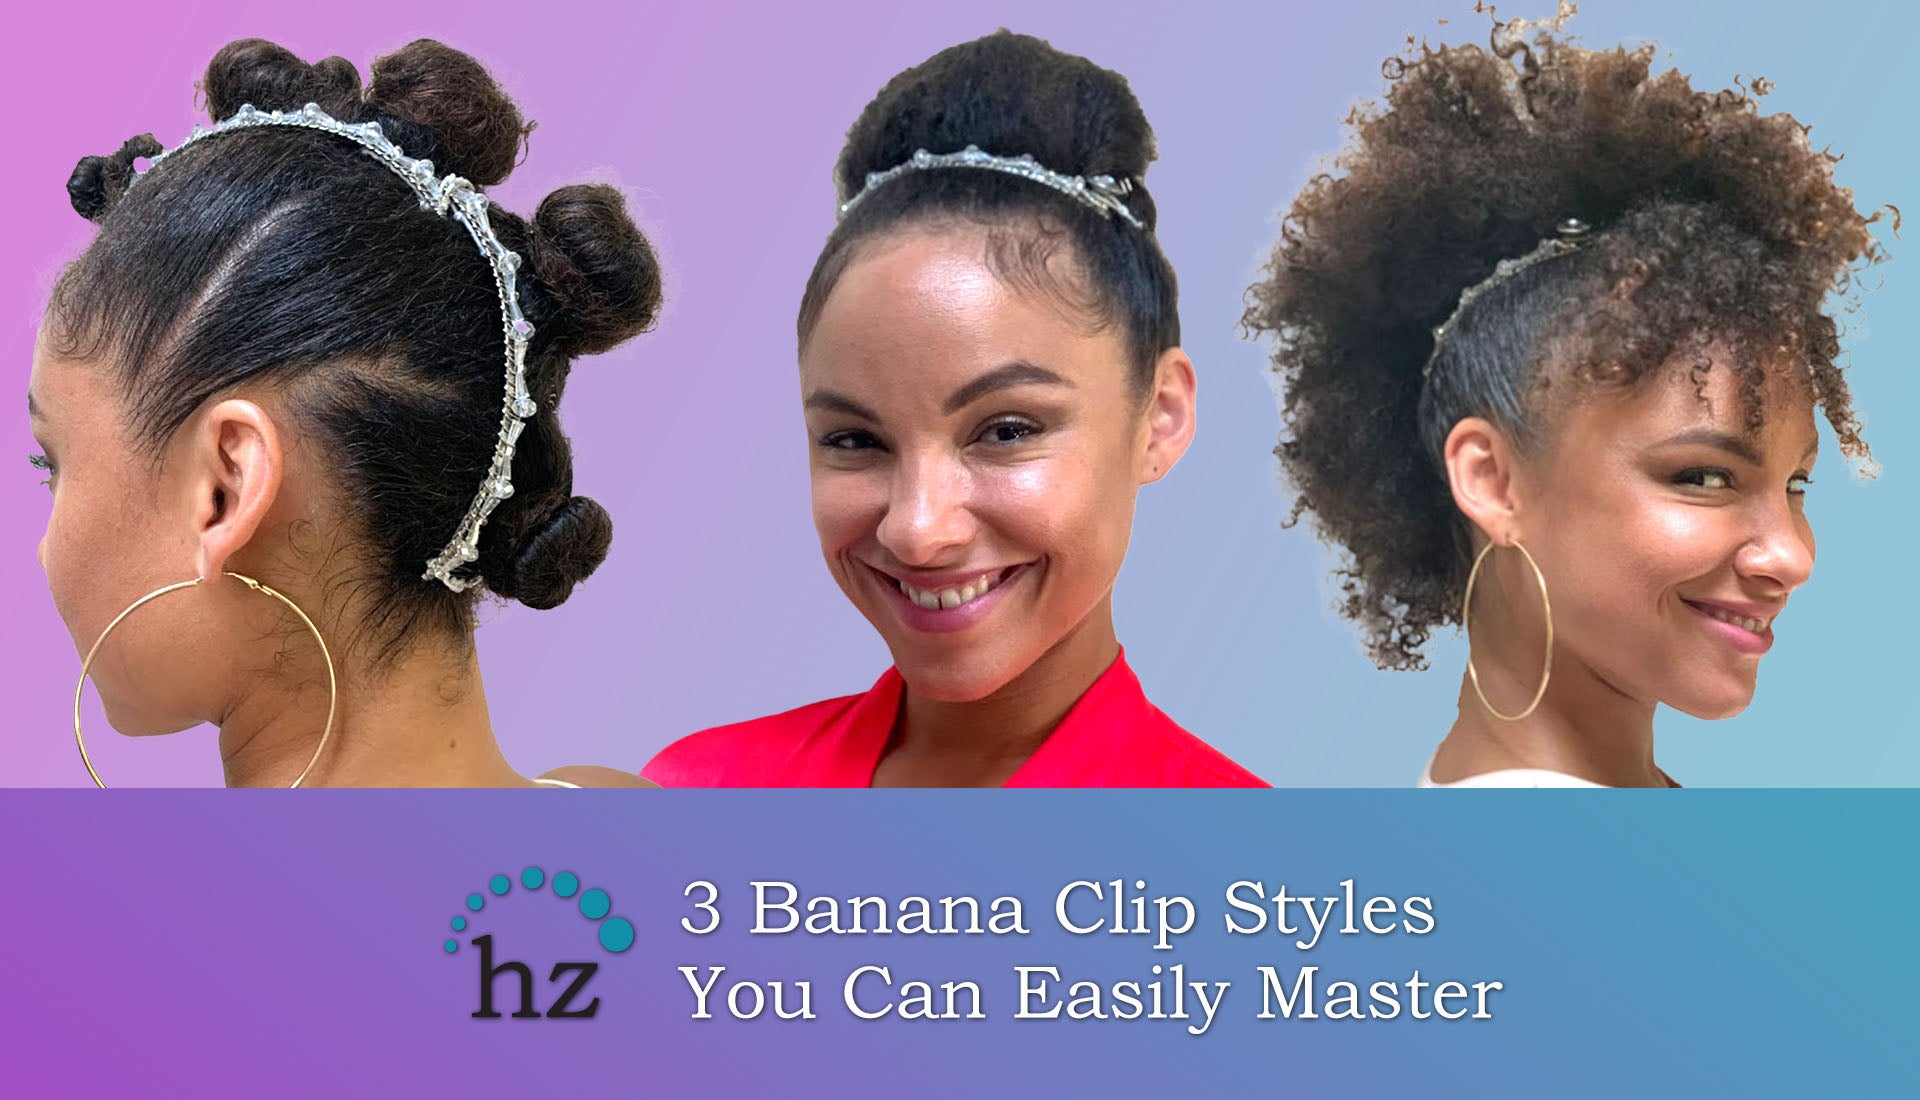 3 Banana Clip Styles To Easily Master Even with Thick Curly Hair